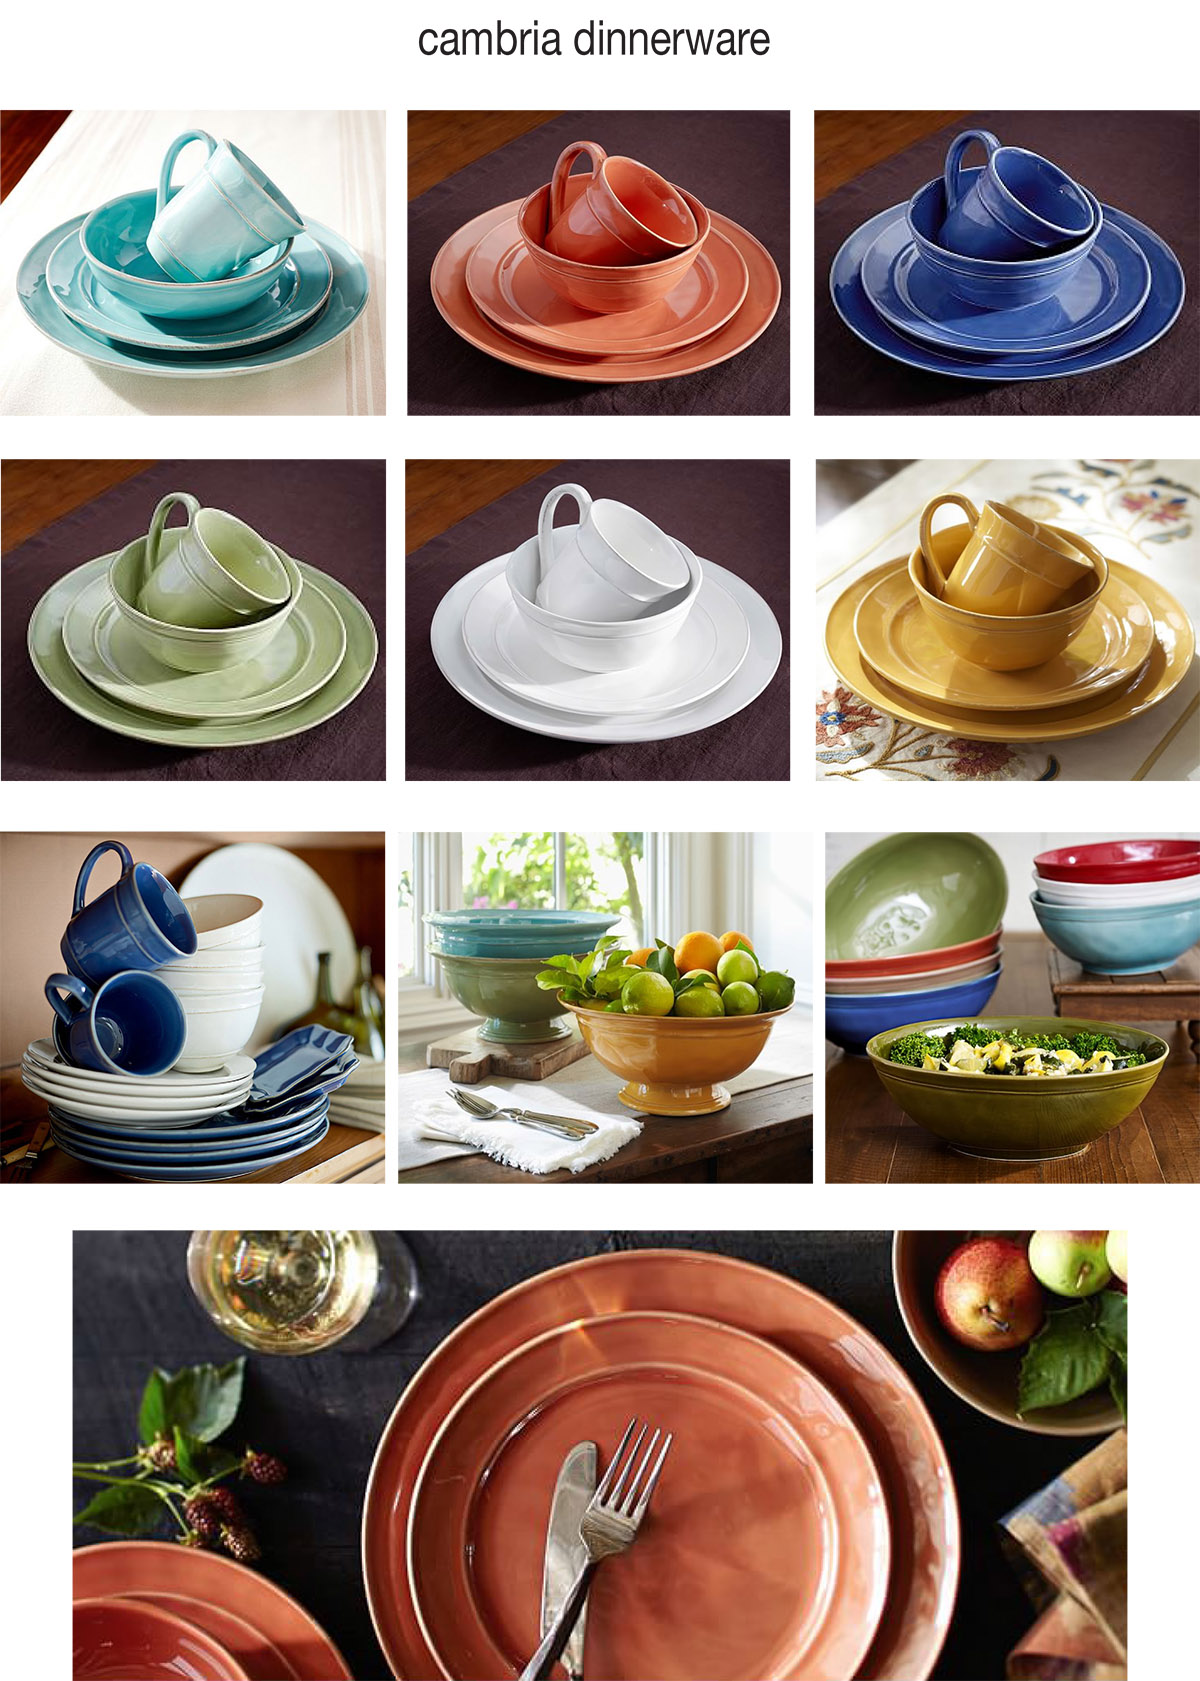 Cambria dinnerware